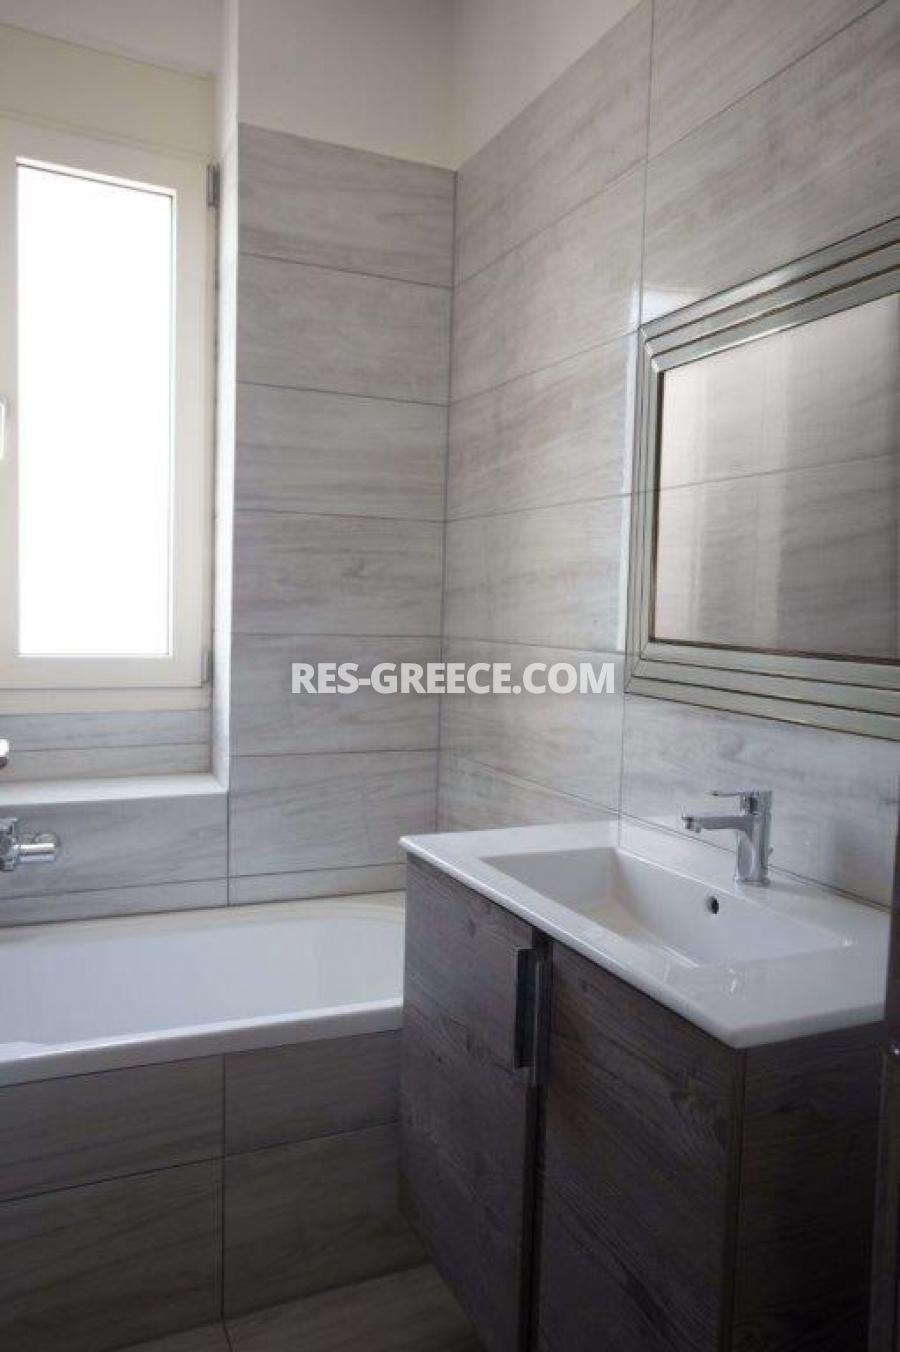 Mesimeri 1, Halkidiki-Kassandra, Greece - modern gated complex by the sea for vacation or rent - Photo 7